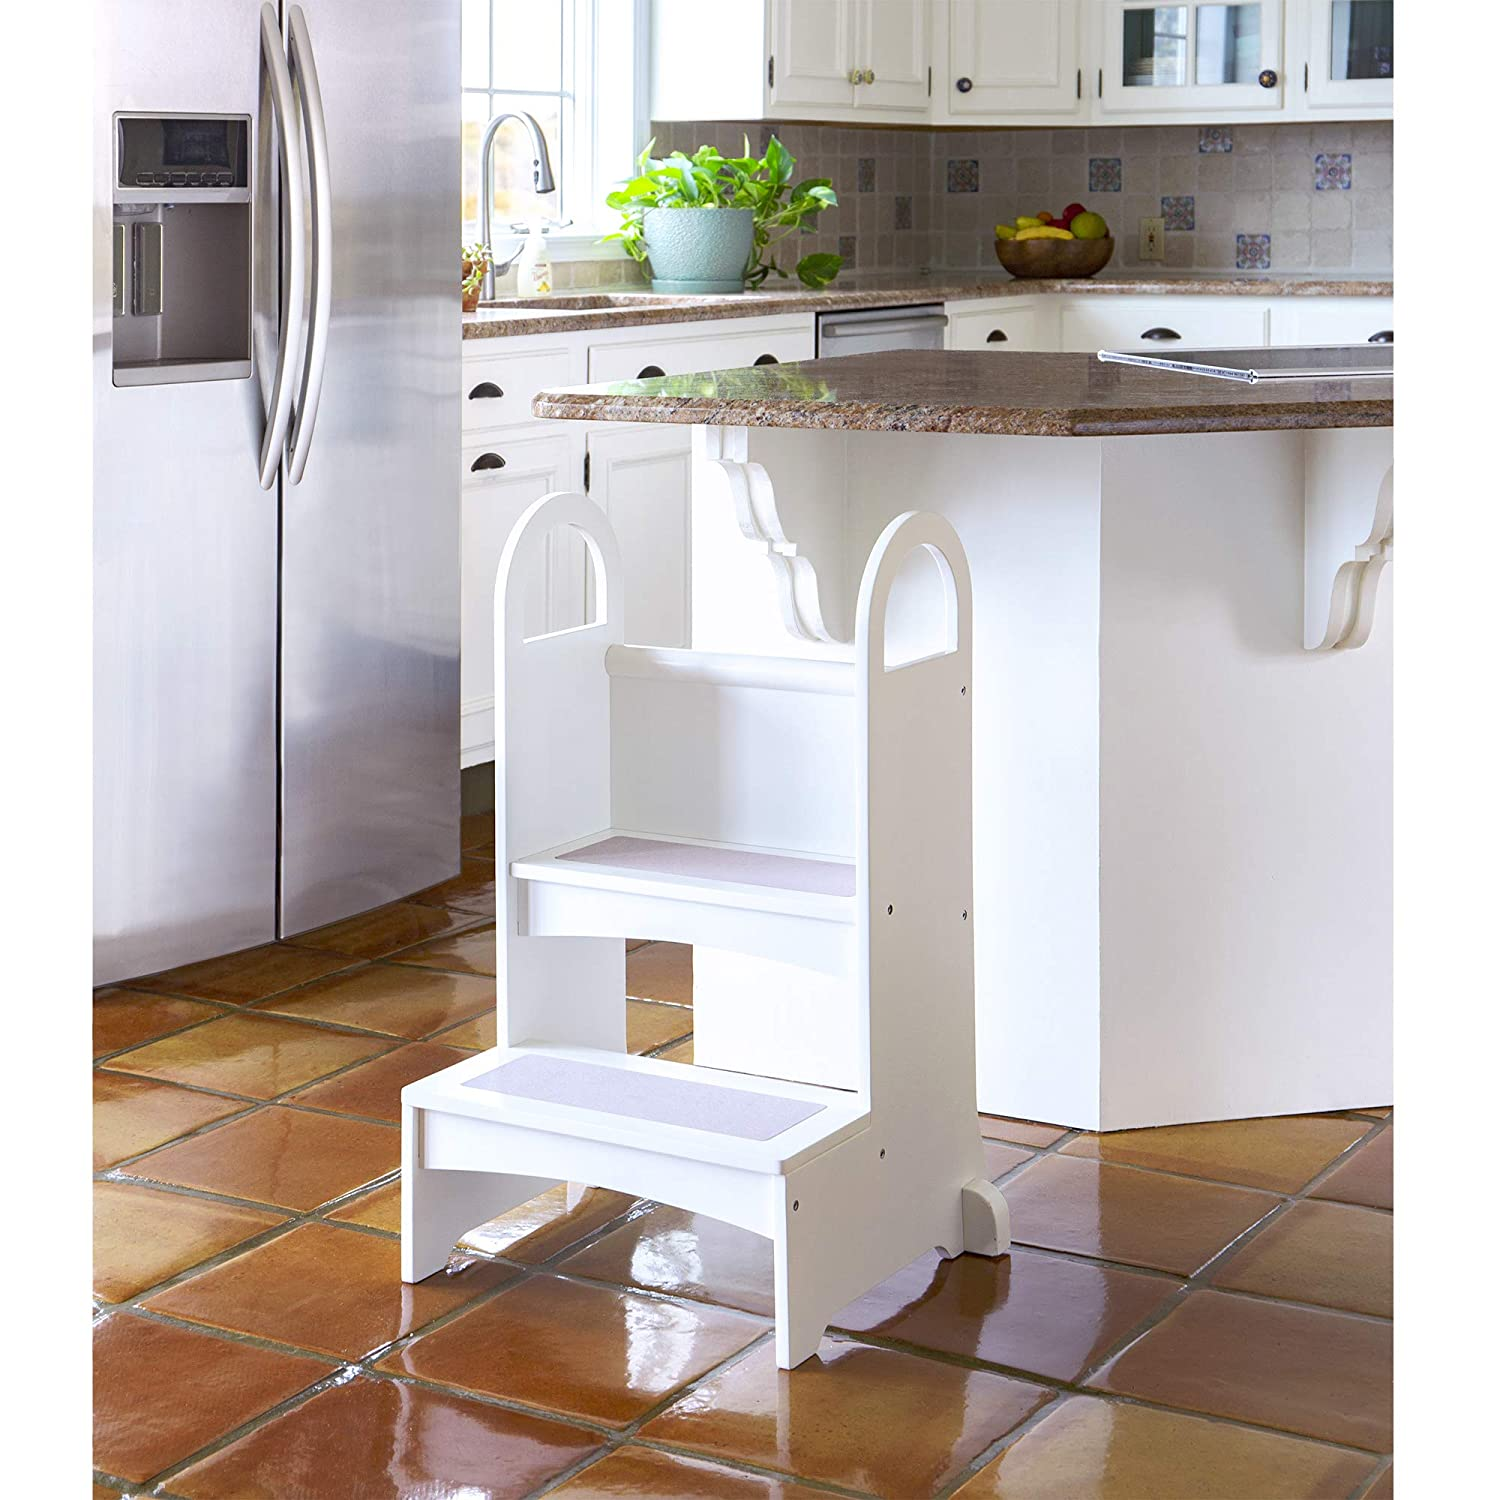 Surprising Guidecraft Kitchen Helper High Rise Step Up White Kids Step Stool With Handles Quality Wood Learning Furniture For Children Evergreenethics Interior Chair Design Evergreenethicsorg